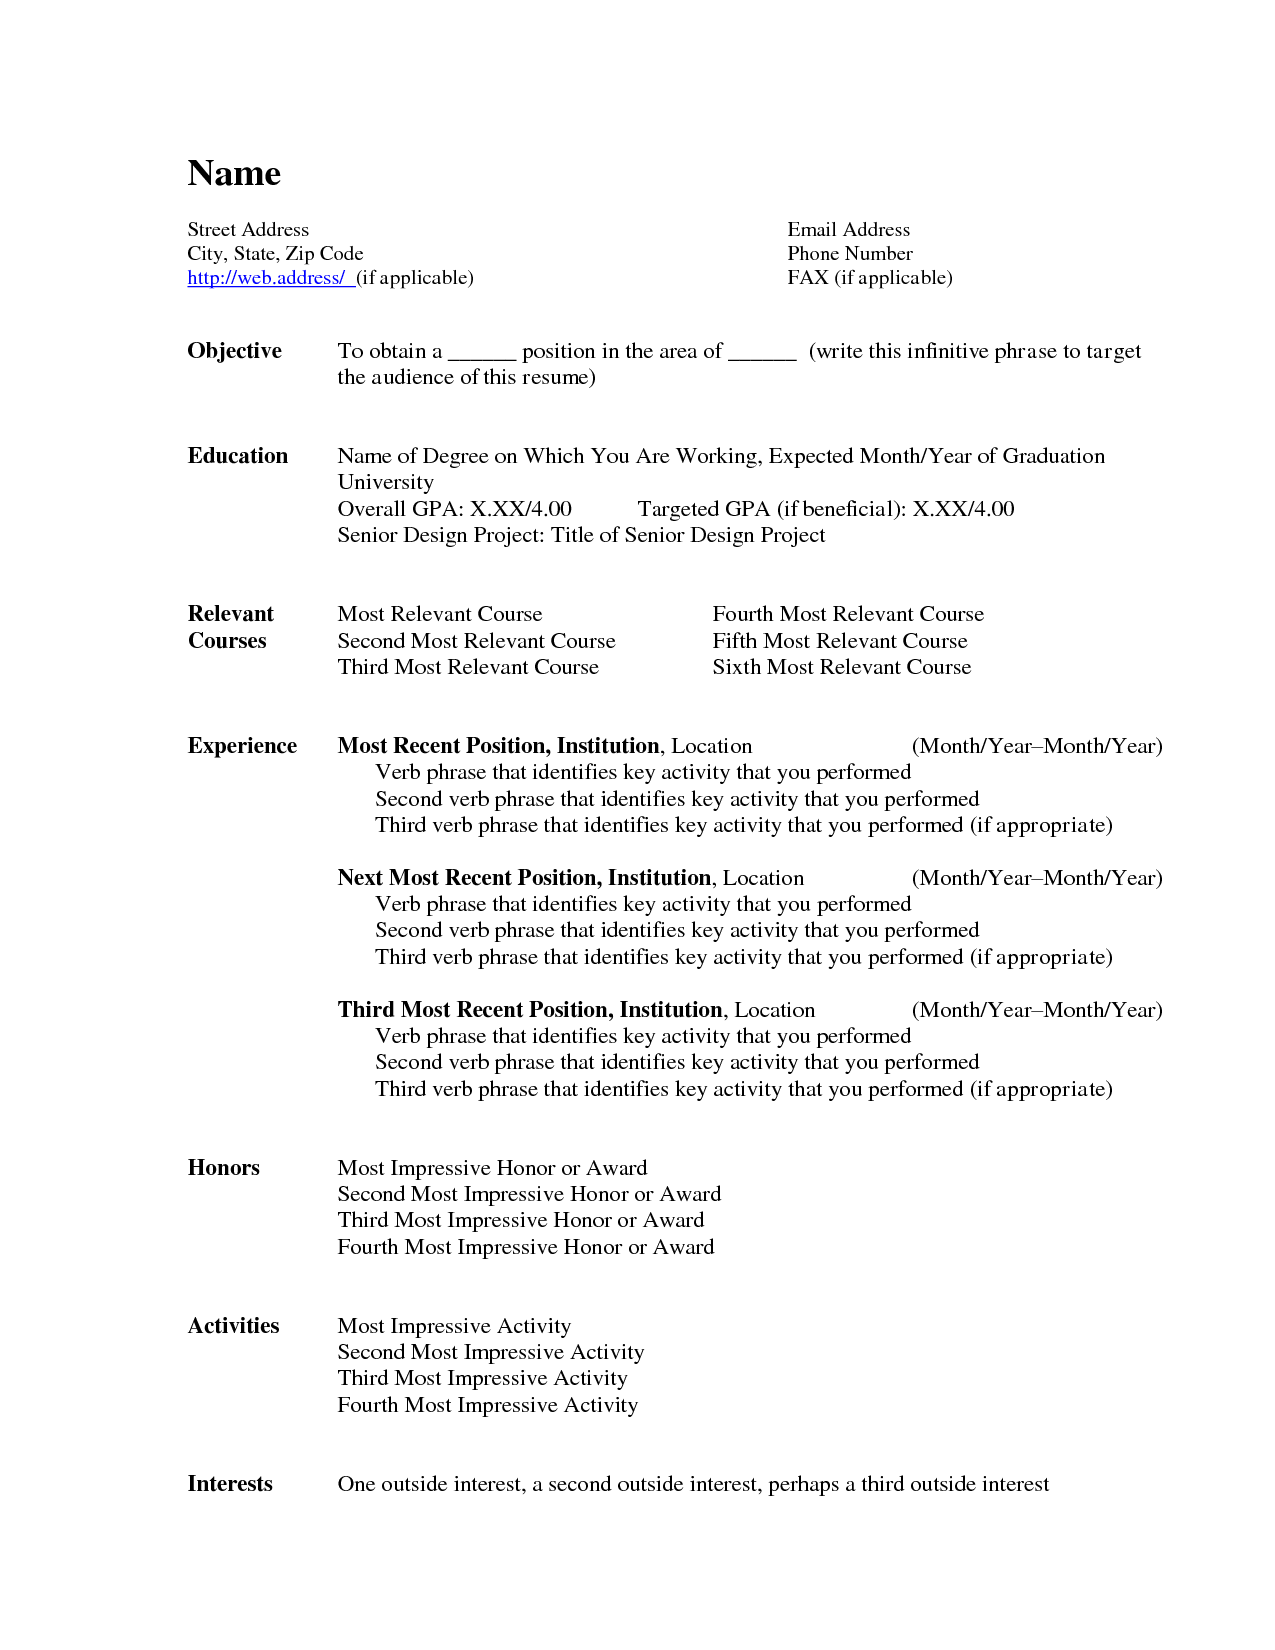 microsoft word resume template resume builder resume resume httpwwwjobresume - Resume Template Microsoft Word